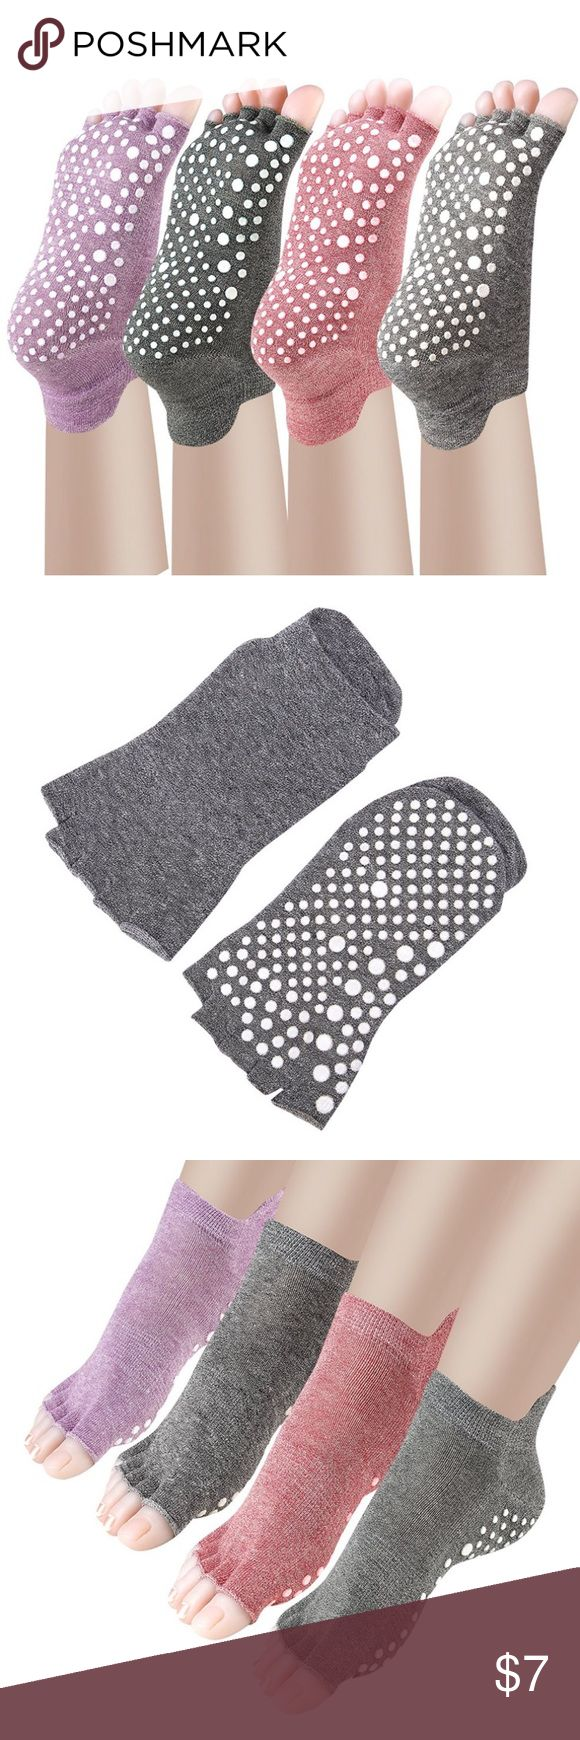 Sale Yoga socks Available in purple, dark green, and dark grey. Please specify which color you would like. BRAND NEW IN PACKAGING. Non-slip toeless socks designed for yoga. Fits Size 5-9 women's.  MATERIAL: 80% Cotton 18% Polyester 2% Spandex. Premium cotton absorbs sweat and keeps your feet comfortable fit. Working as womens yoga socks, barre socks, pilates socks, ballet barres socks, dance socks, toeless socks. Sale lasts24 hours! Other